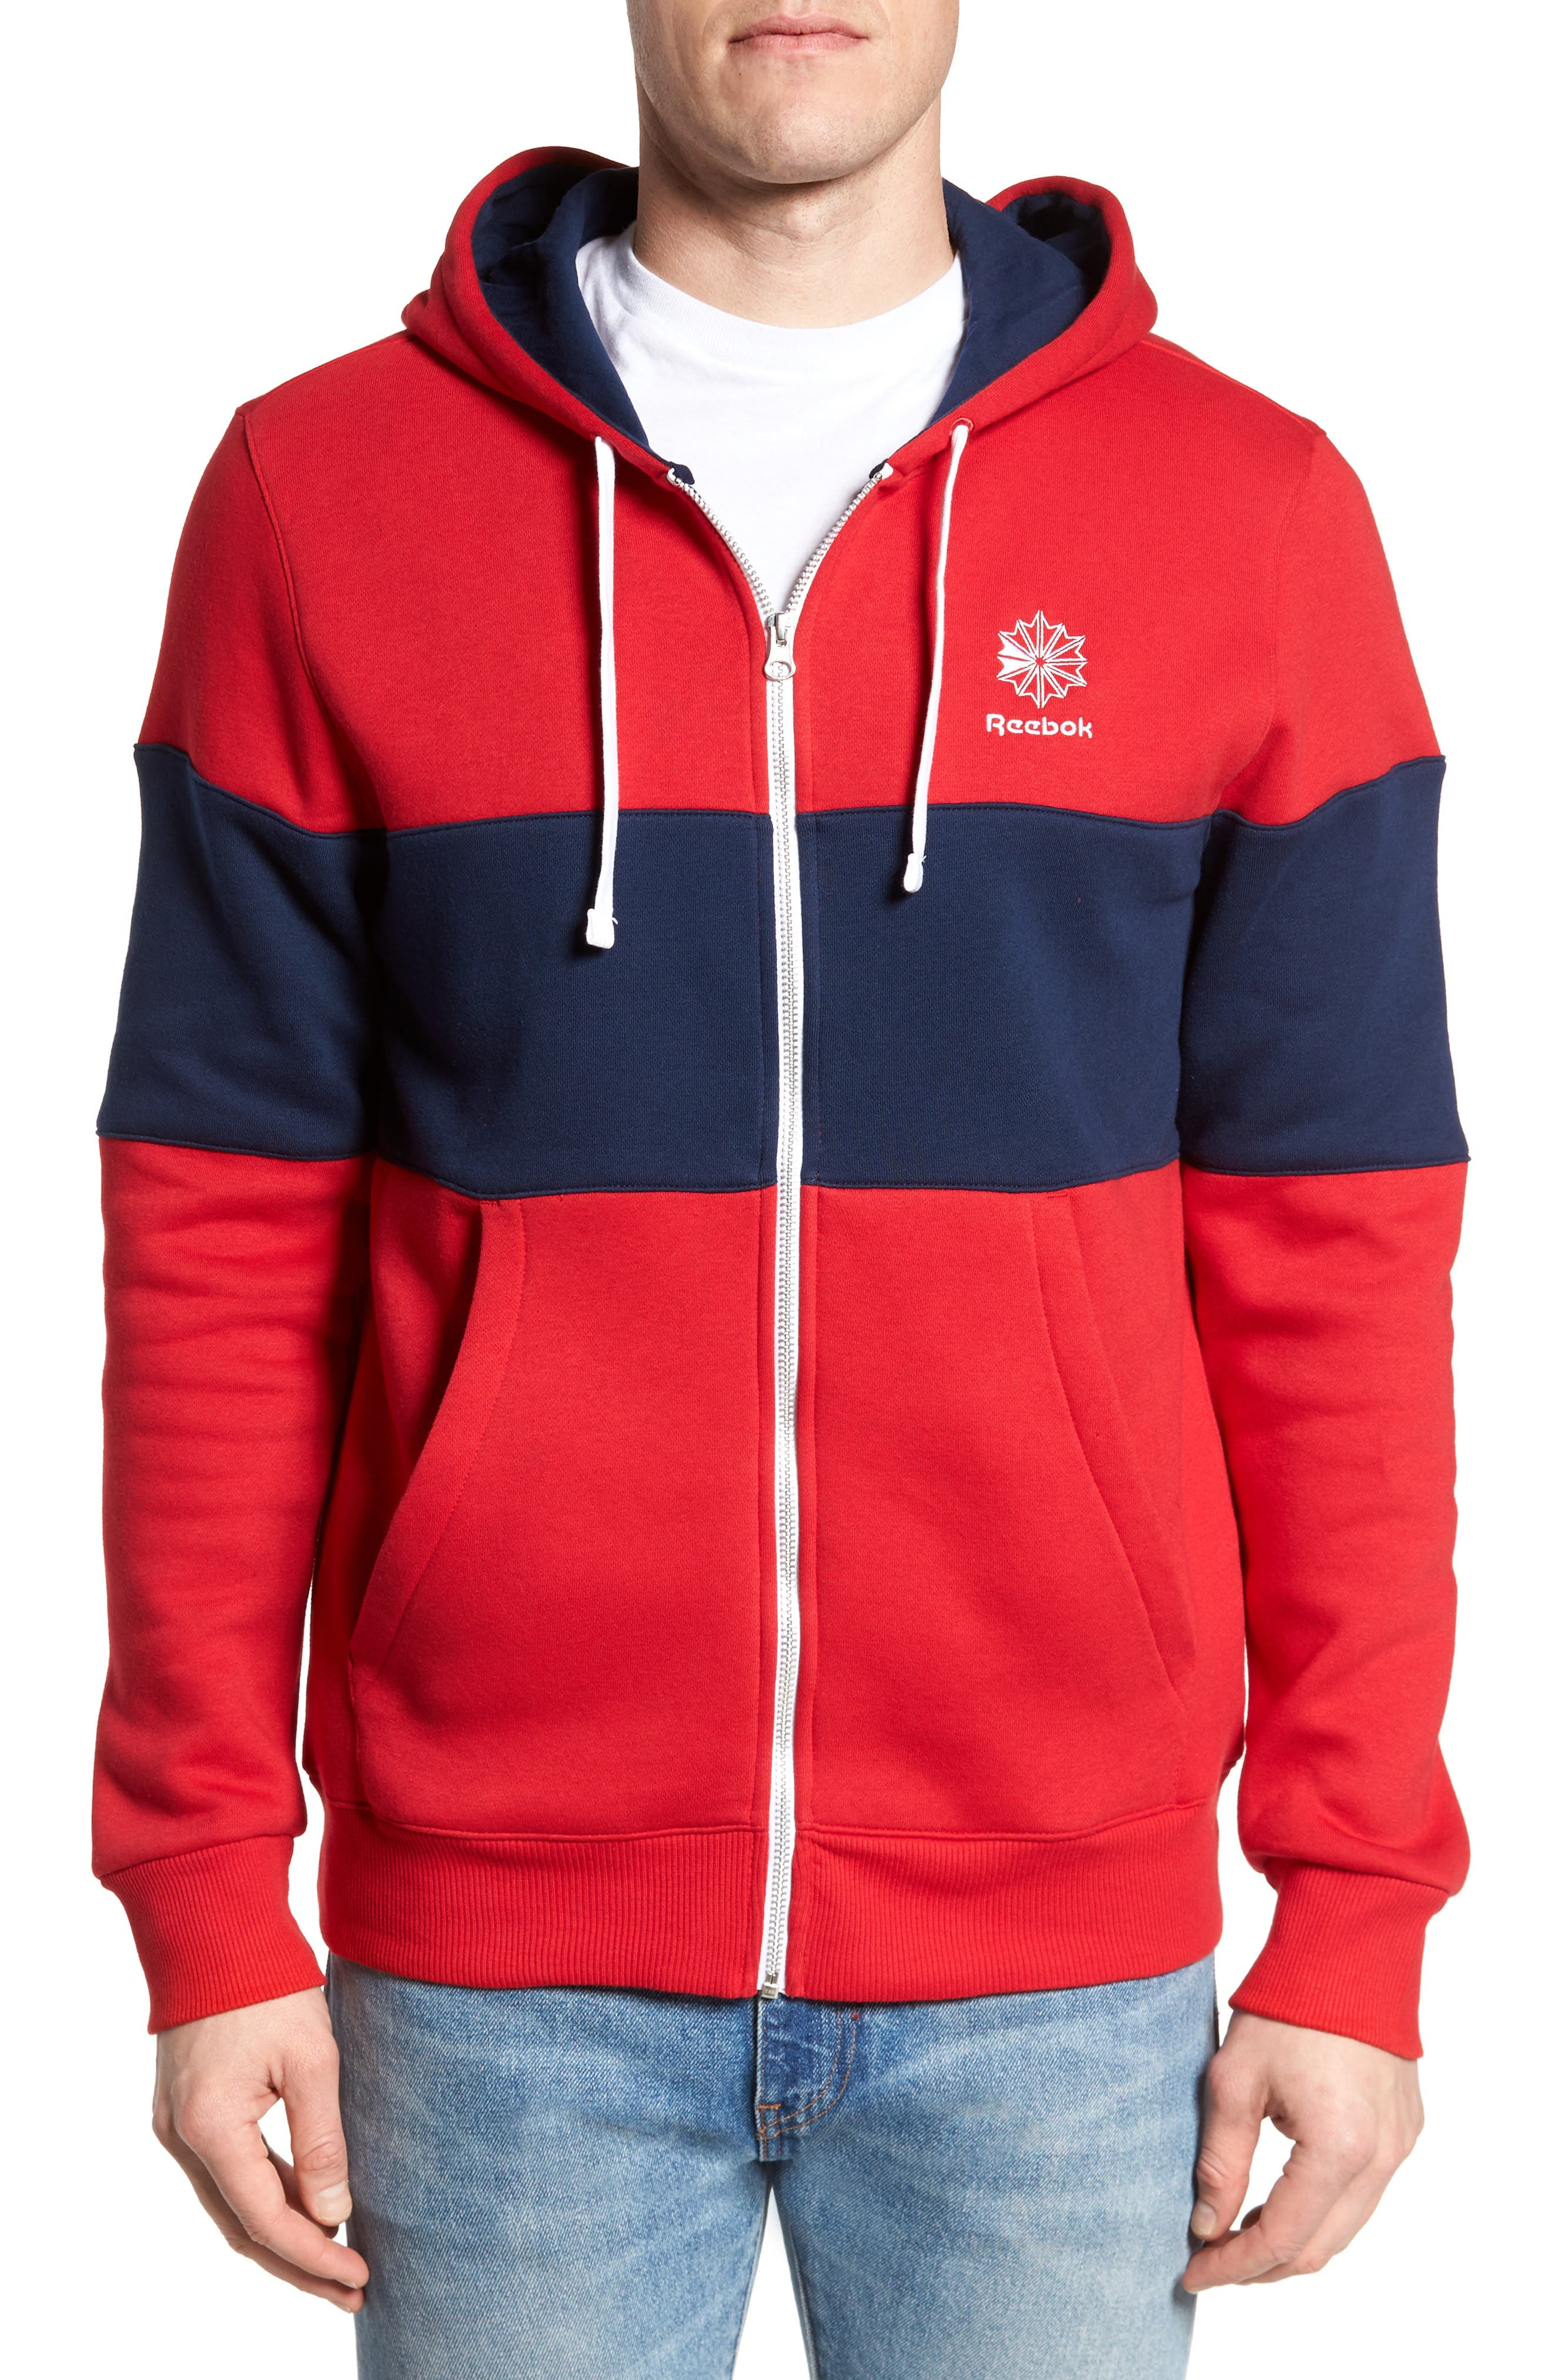 Classics Foundation Clockblock Zip Hoodie,                         Main,                         color, Excellent Red/ Collegiate Navy